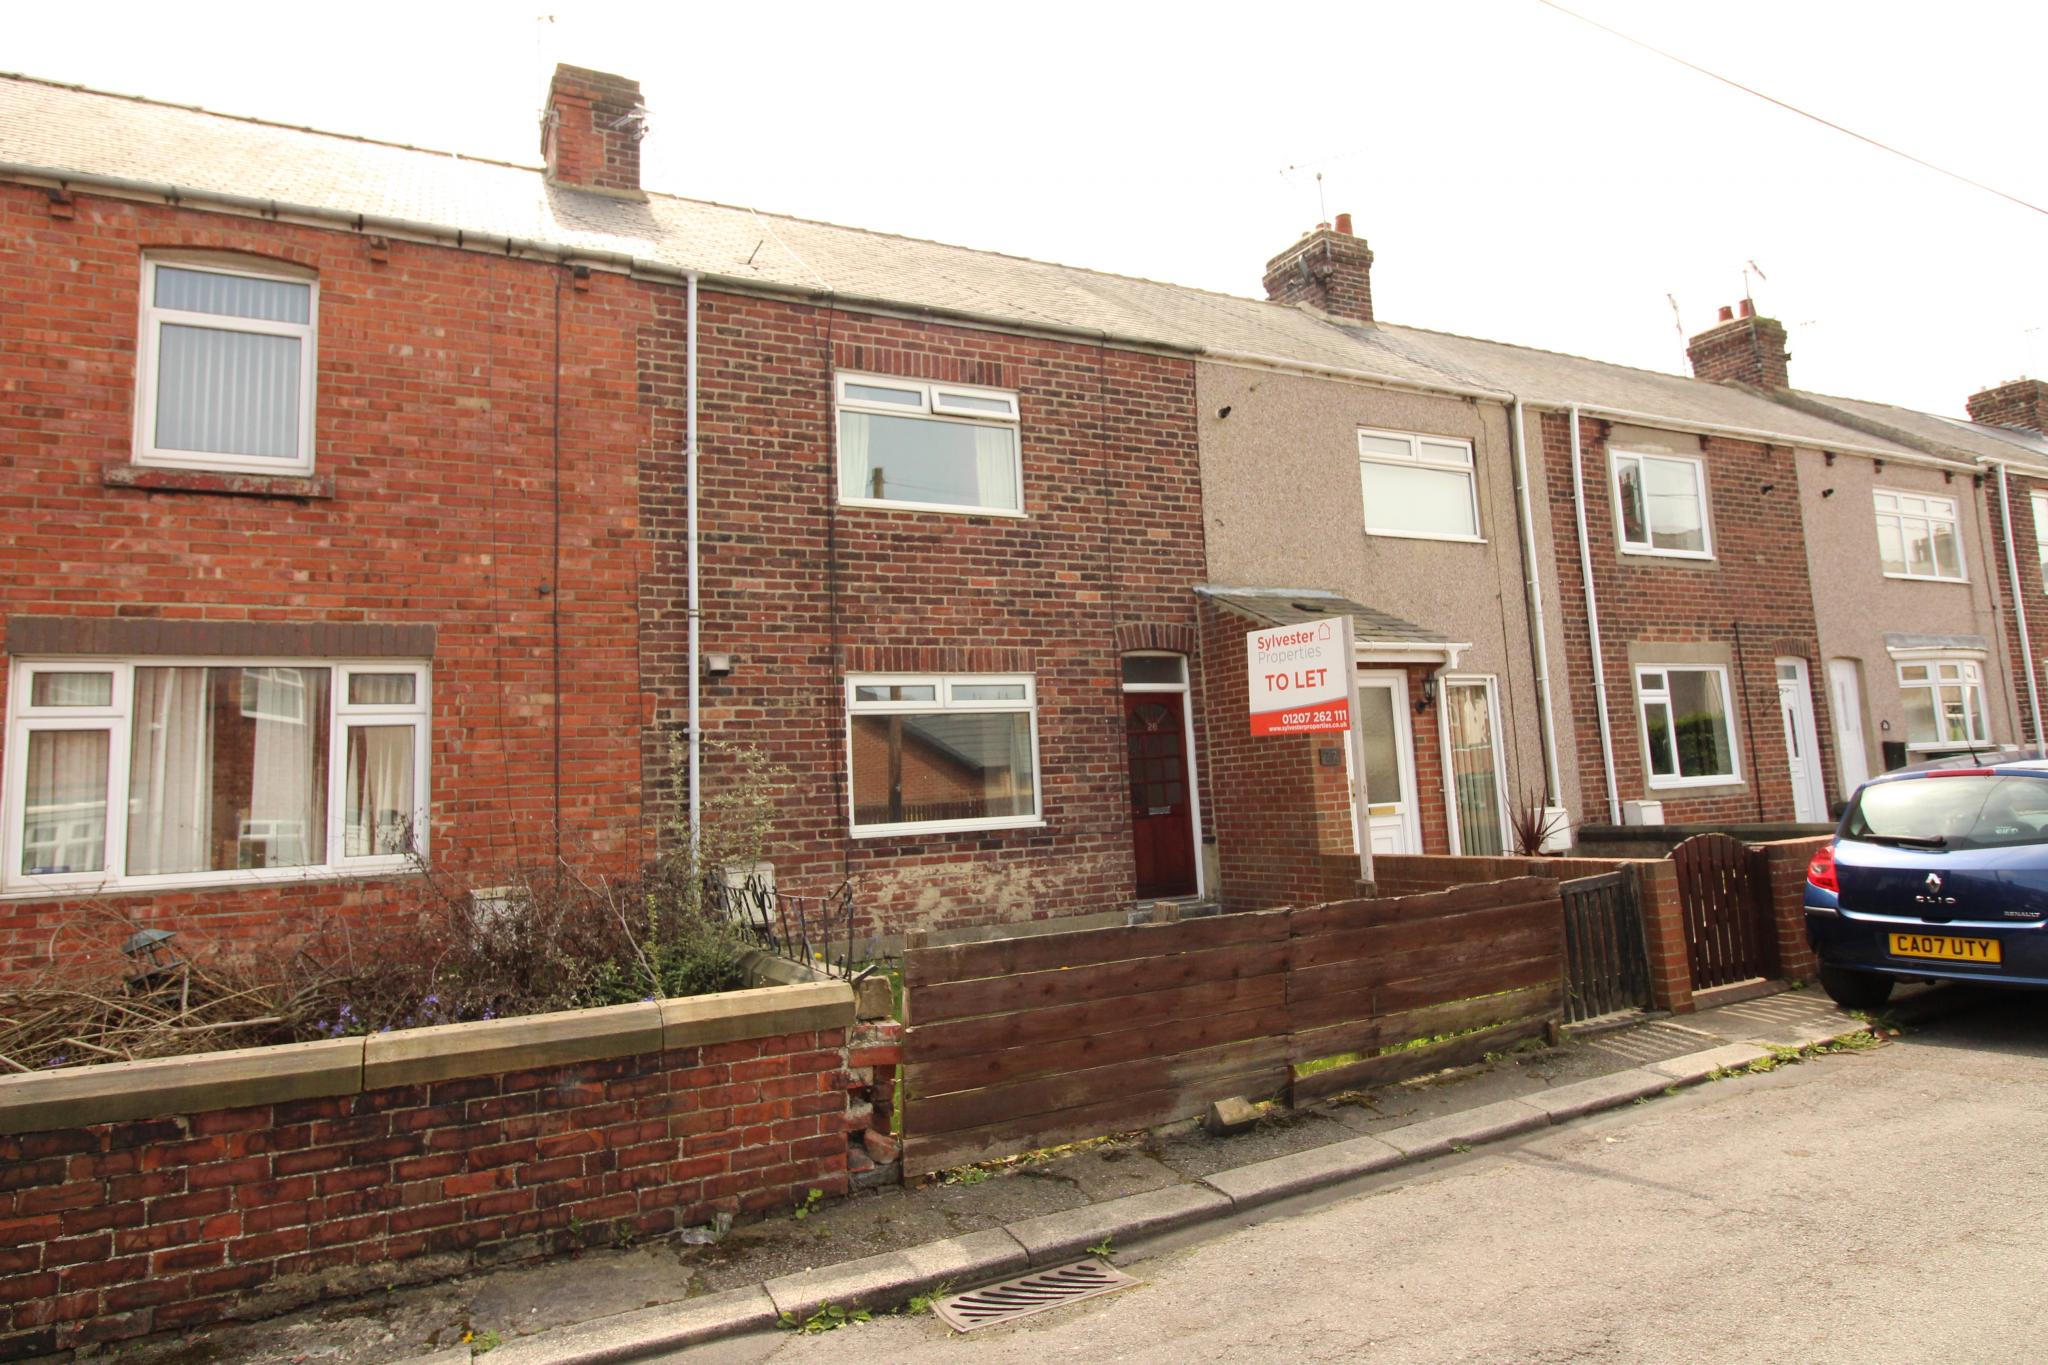 2 bedroom mid terraced house Let Agreed in Durham - Photograph 6.